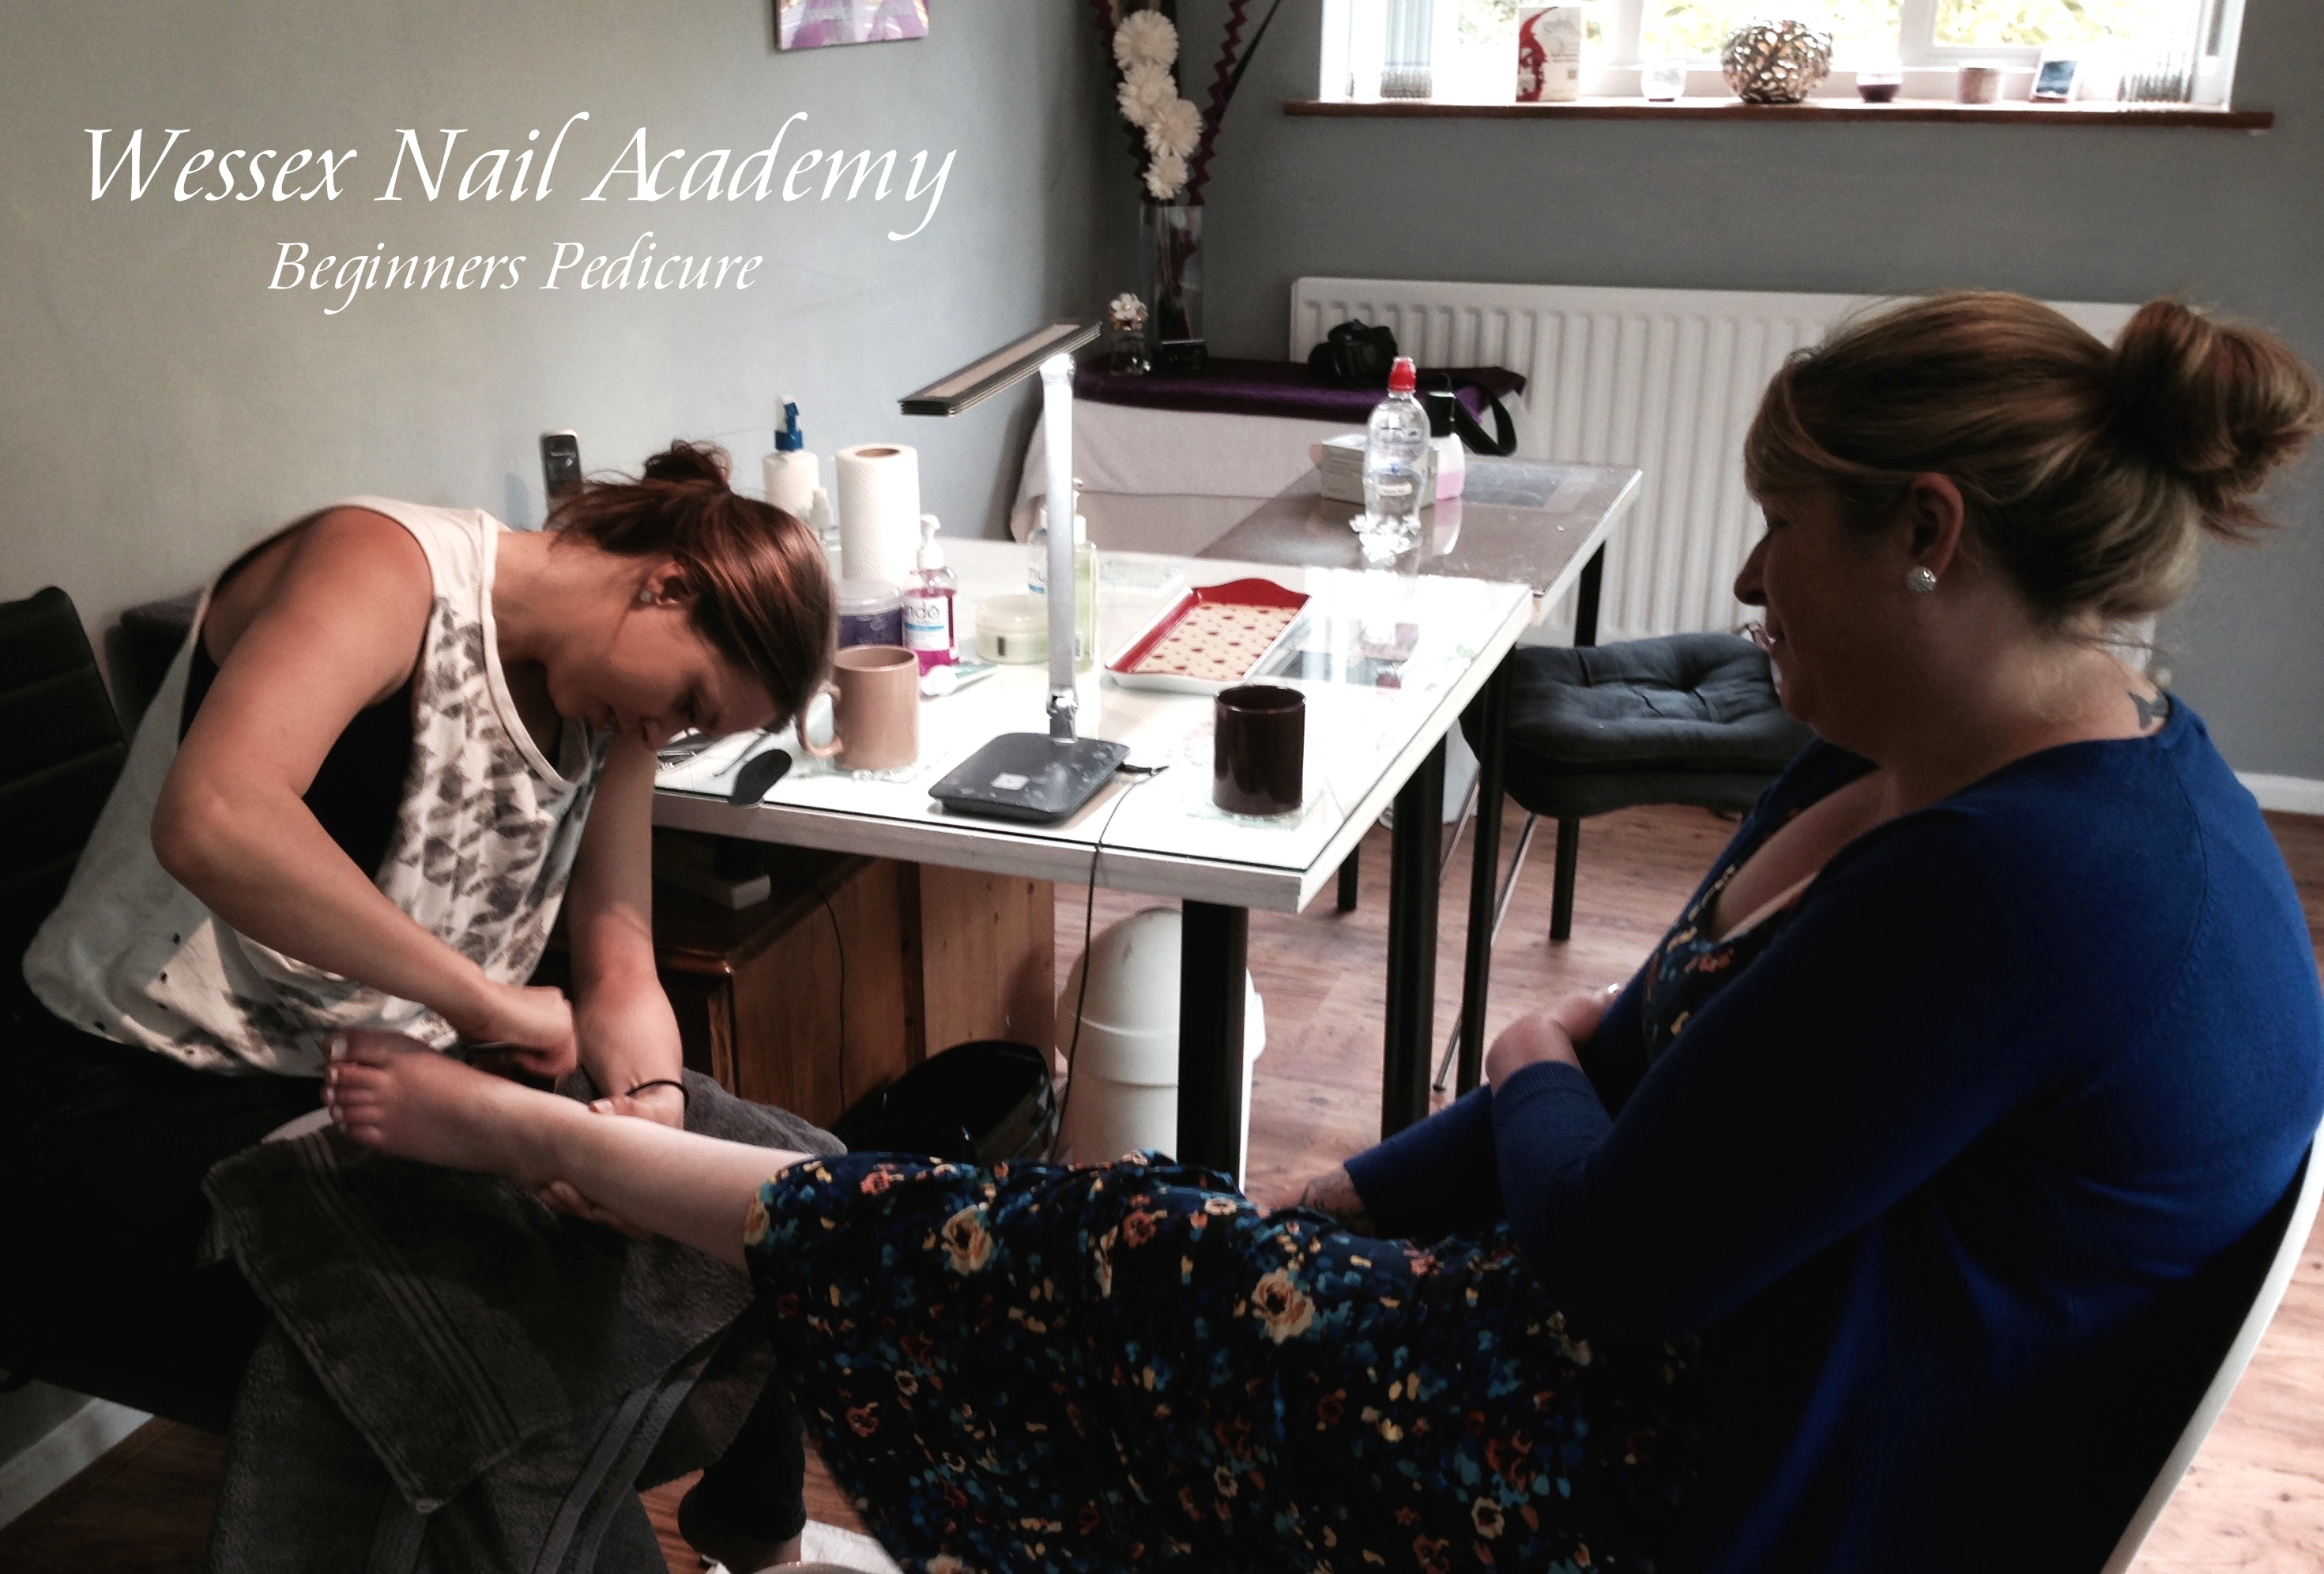 Beginners Manicure and Pedicure Course, Nail extension training, nail training course, Wessex Nail Academy Okeford Fitzpaine, Dorset